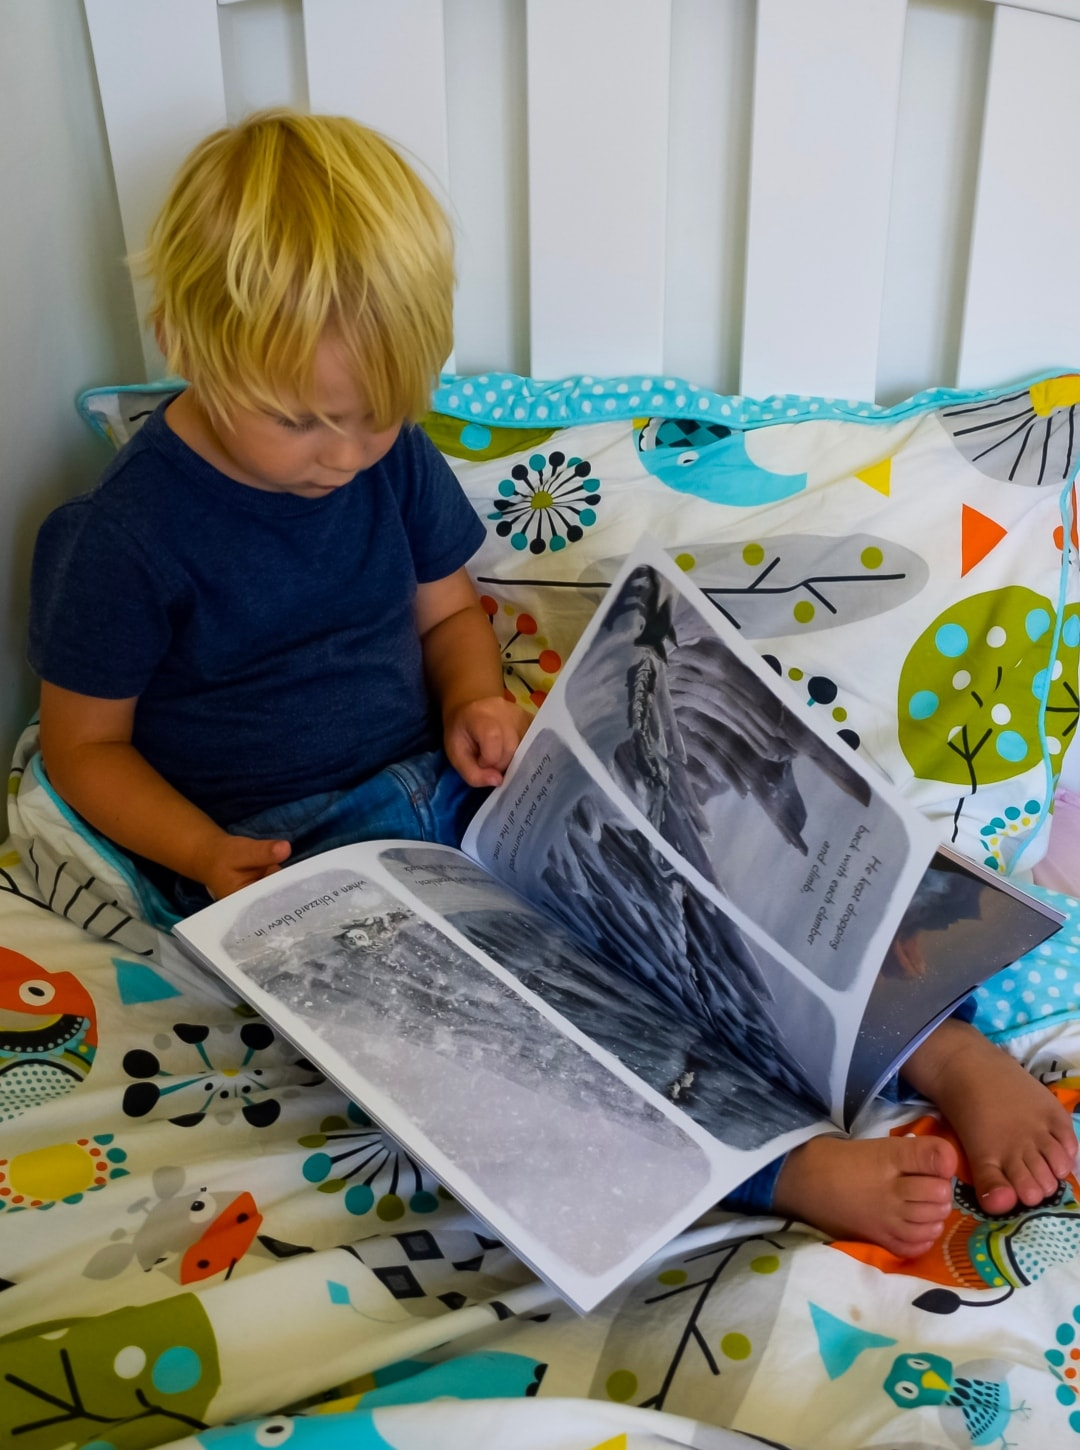 """A photograph of a little boy holding a copy of """"The Way Home For Wolf"""" by Rachel Bright and Jim Field - The Way Home For Wilf by Rachel Bright and Jim Field - A Review - Mrs H's favourite things"""